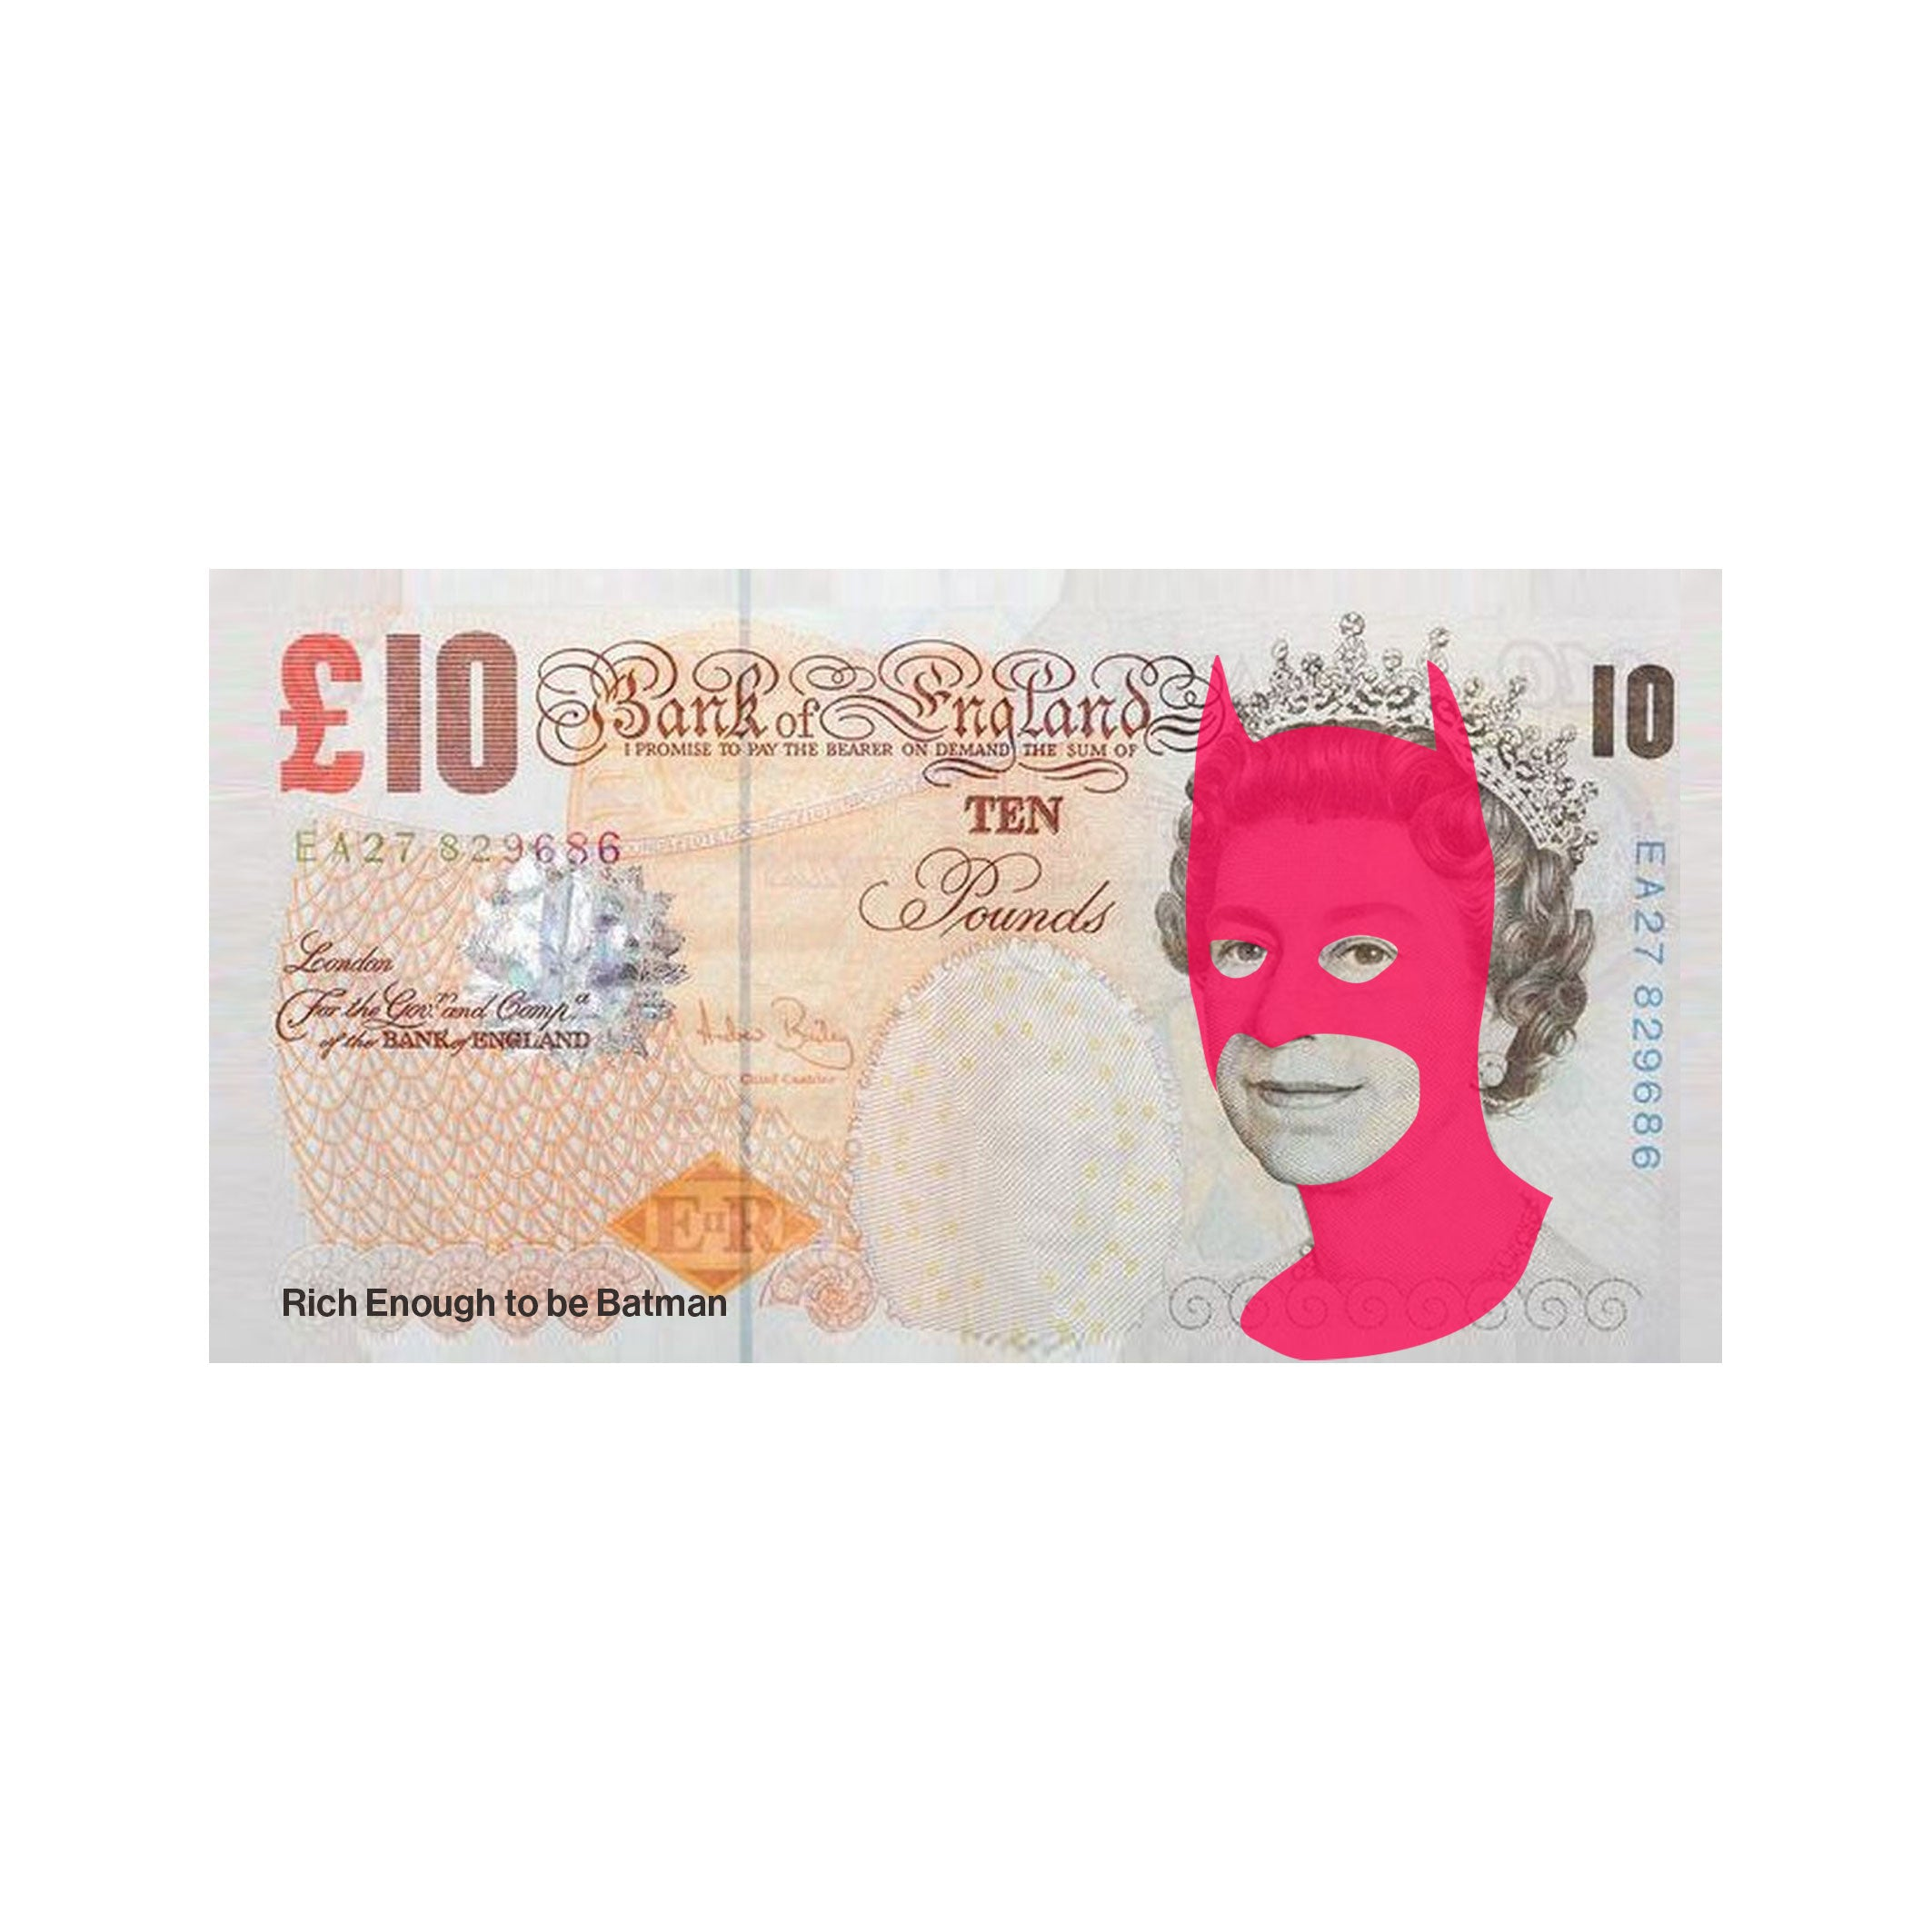 Rich Enough to be Batman - Tenner